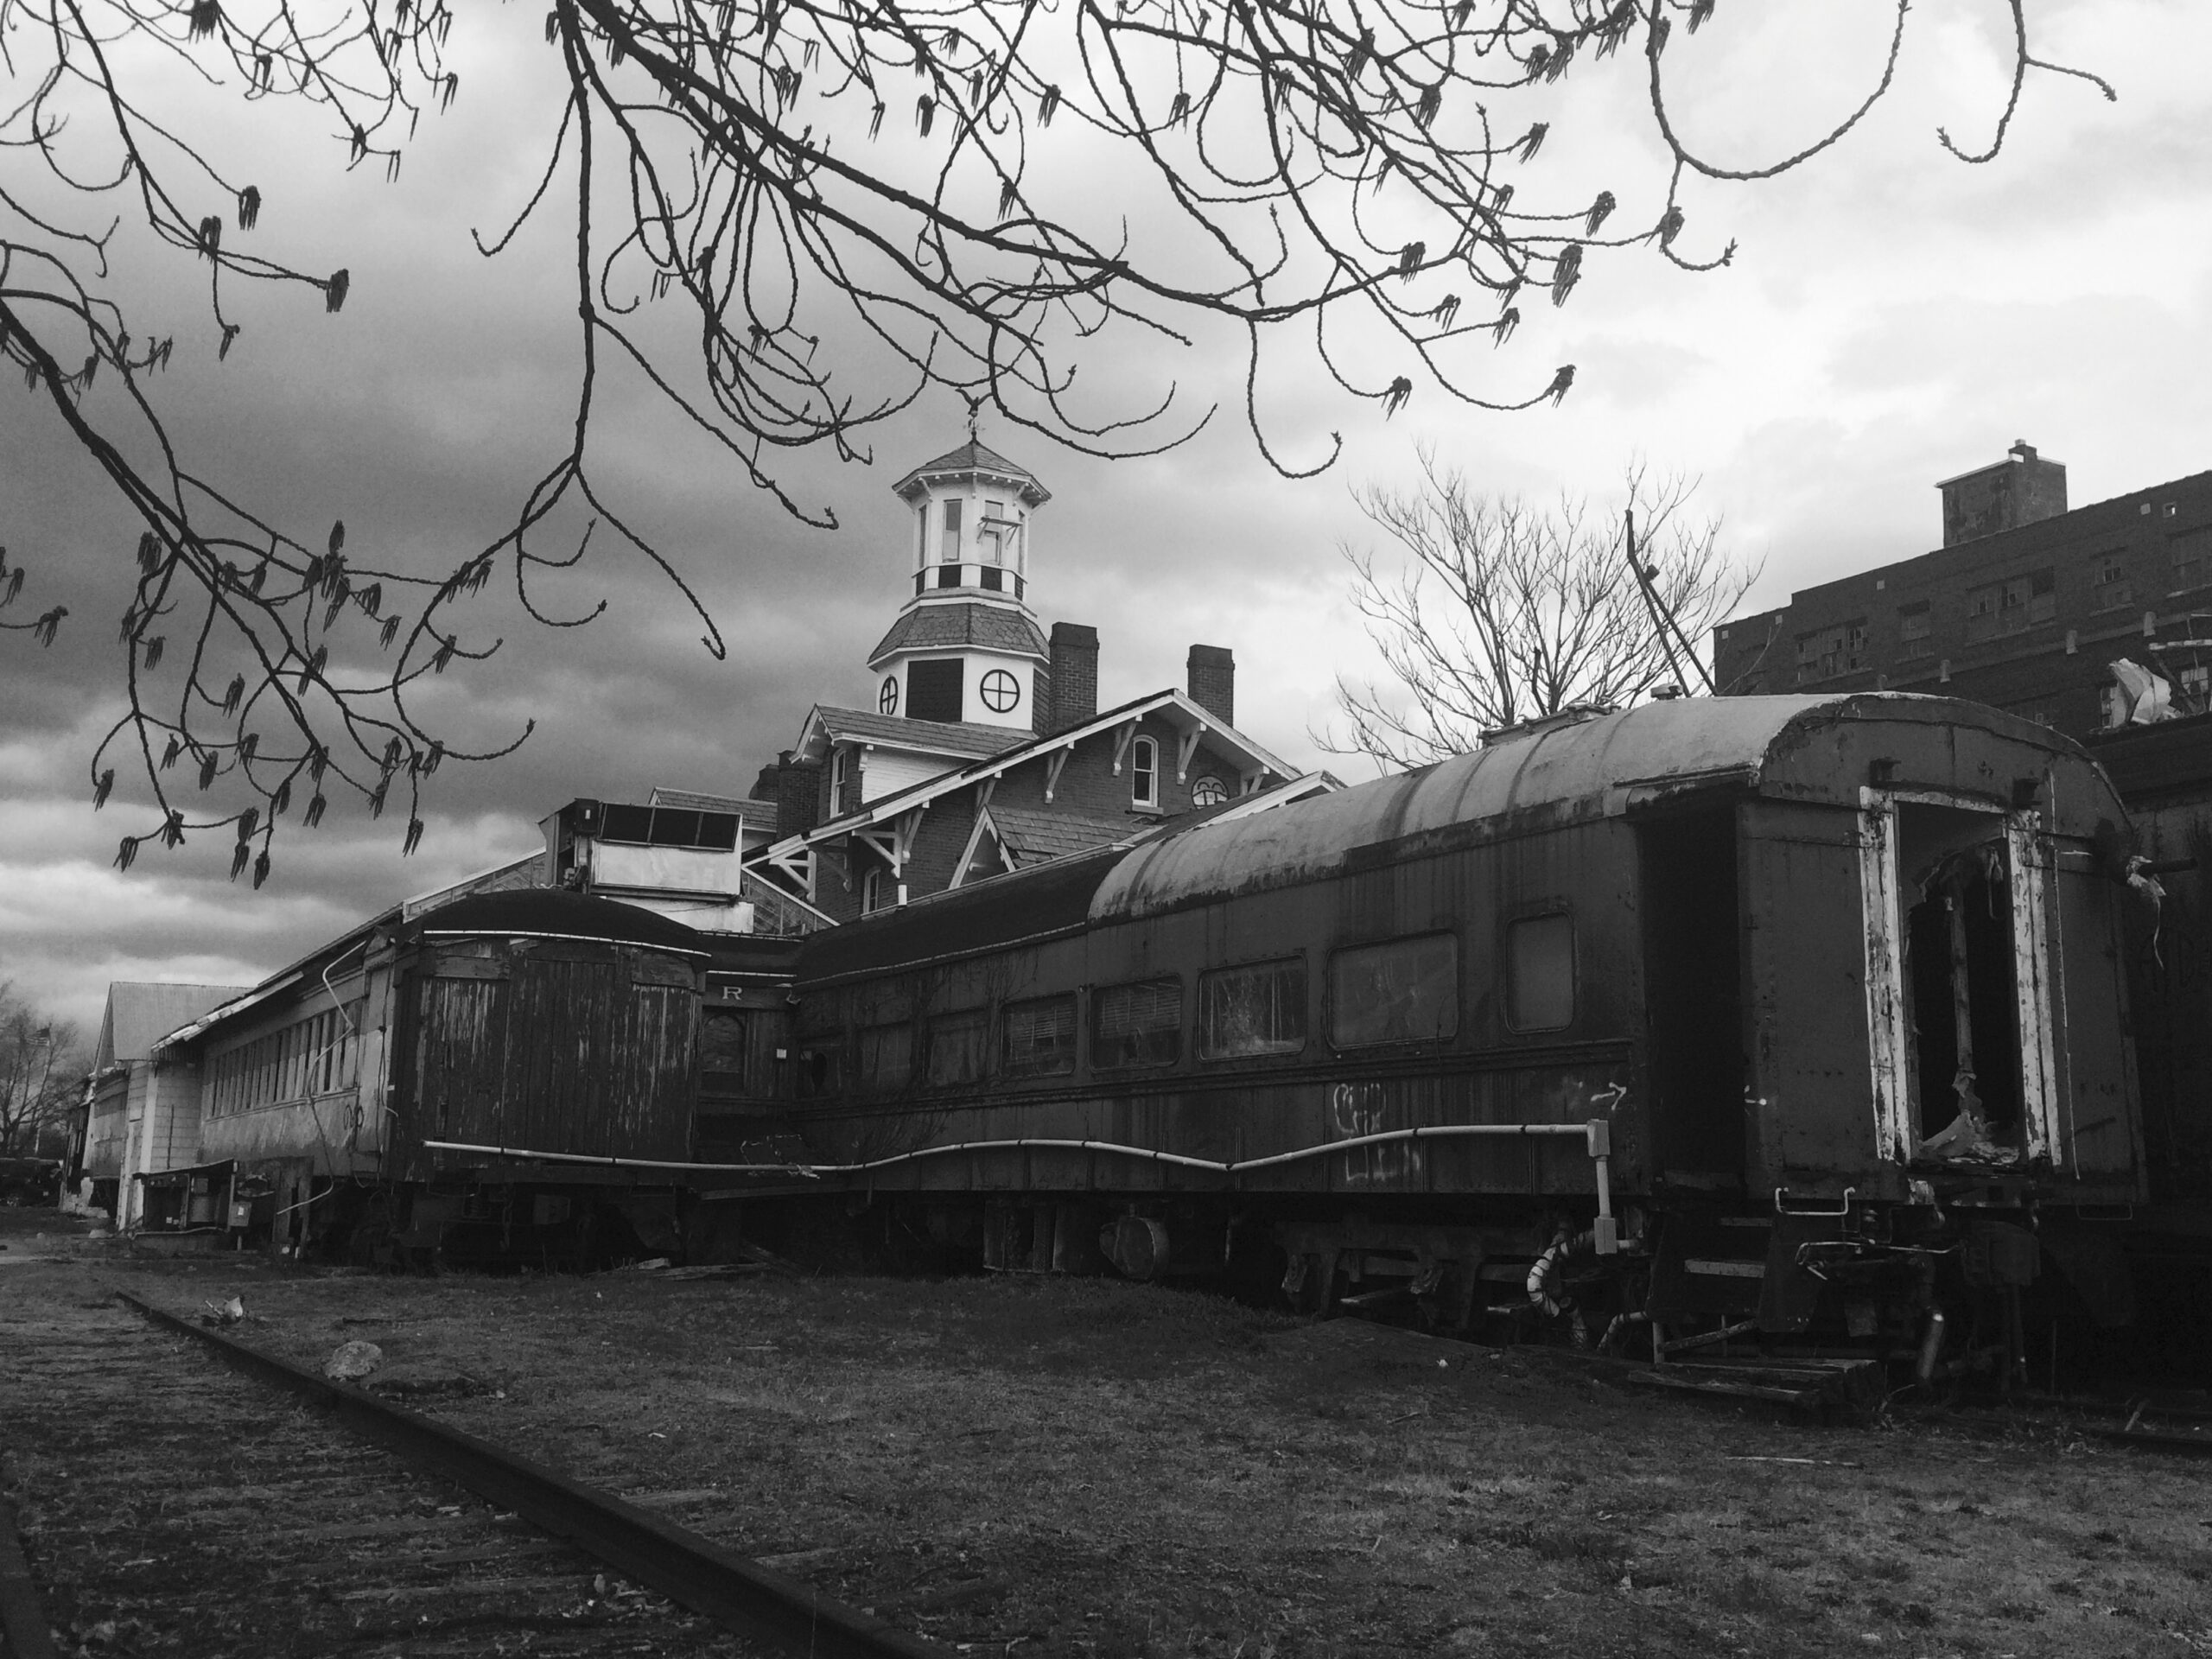 The Remains of the Train Station Photo by Owen Vaughn (March 31, 2016)